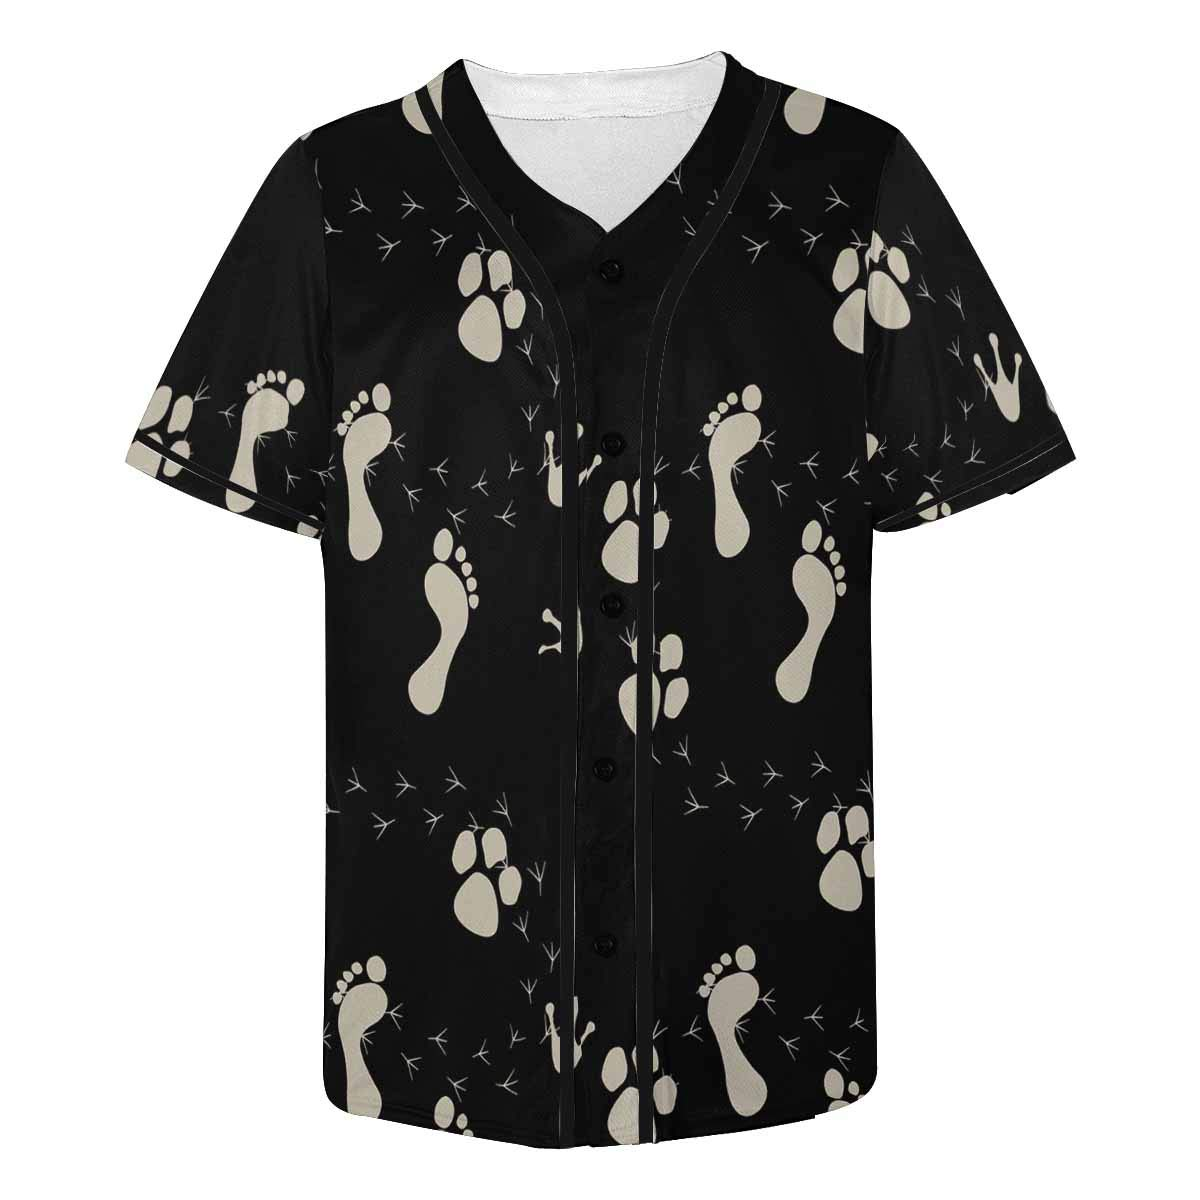 INTERESTPRINT Mens Hipster Hip Hop Button-Down Baseball Jersey Short Sleeve Shirt